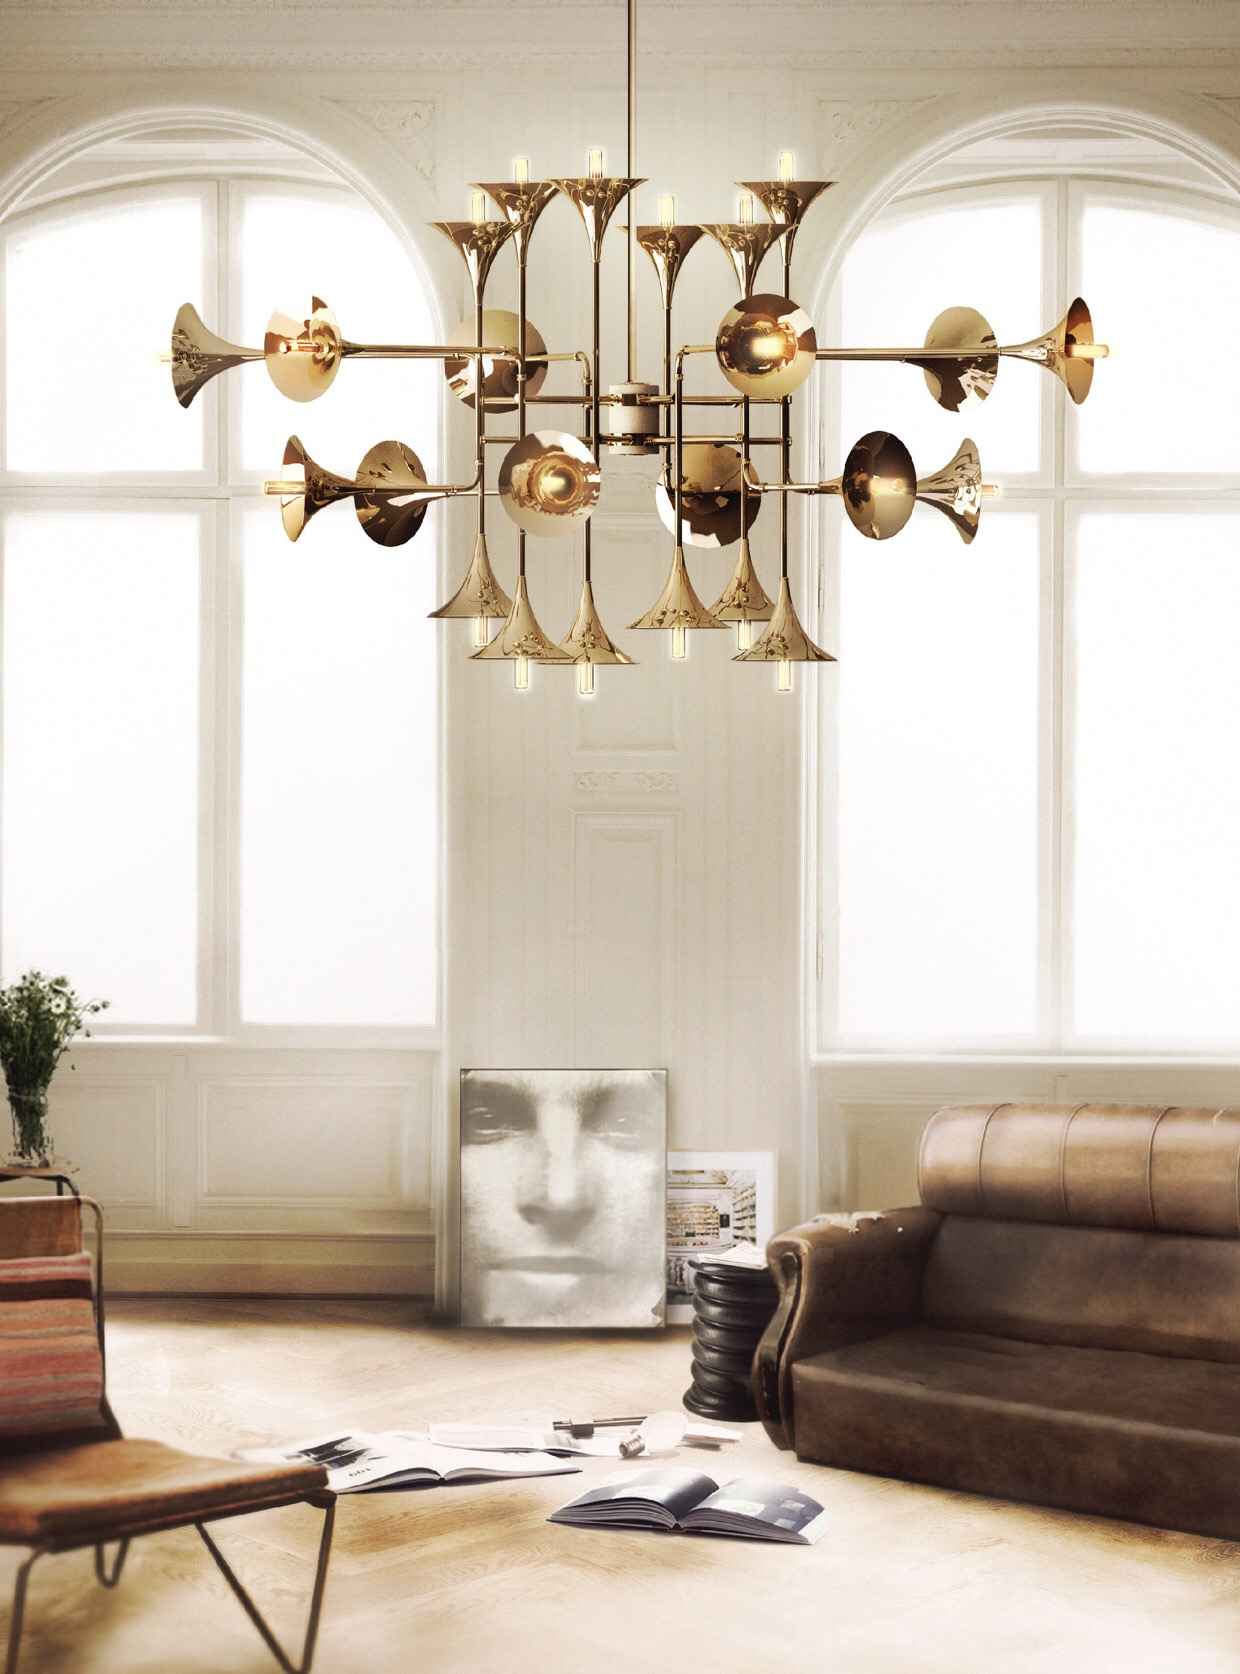 Contemporary Chandeliers Design That Will Delight You2 Contemporary Chandeliers 10 Contemporary Chandeliers Design That Will Delight